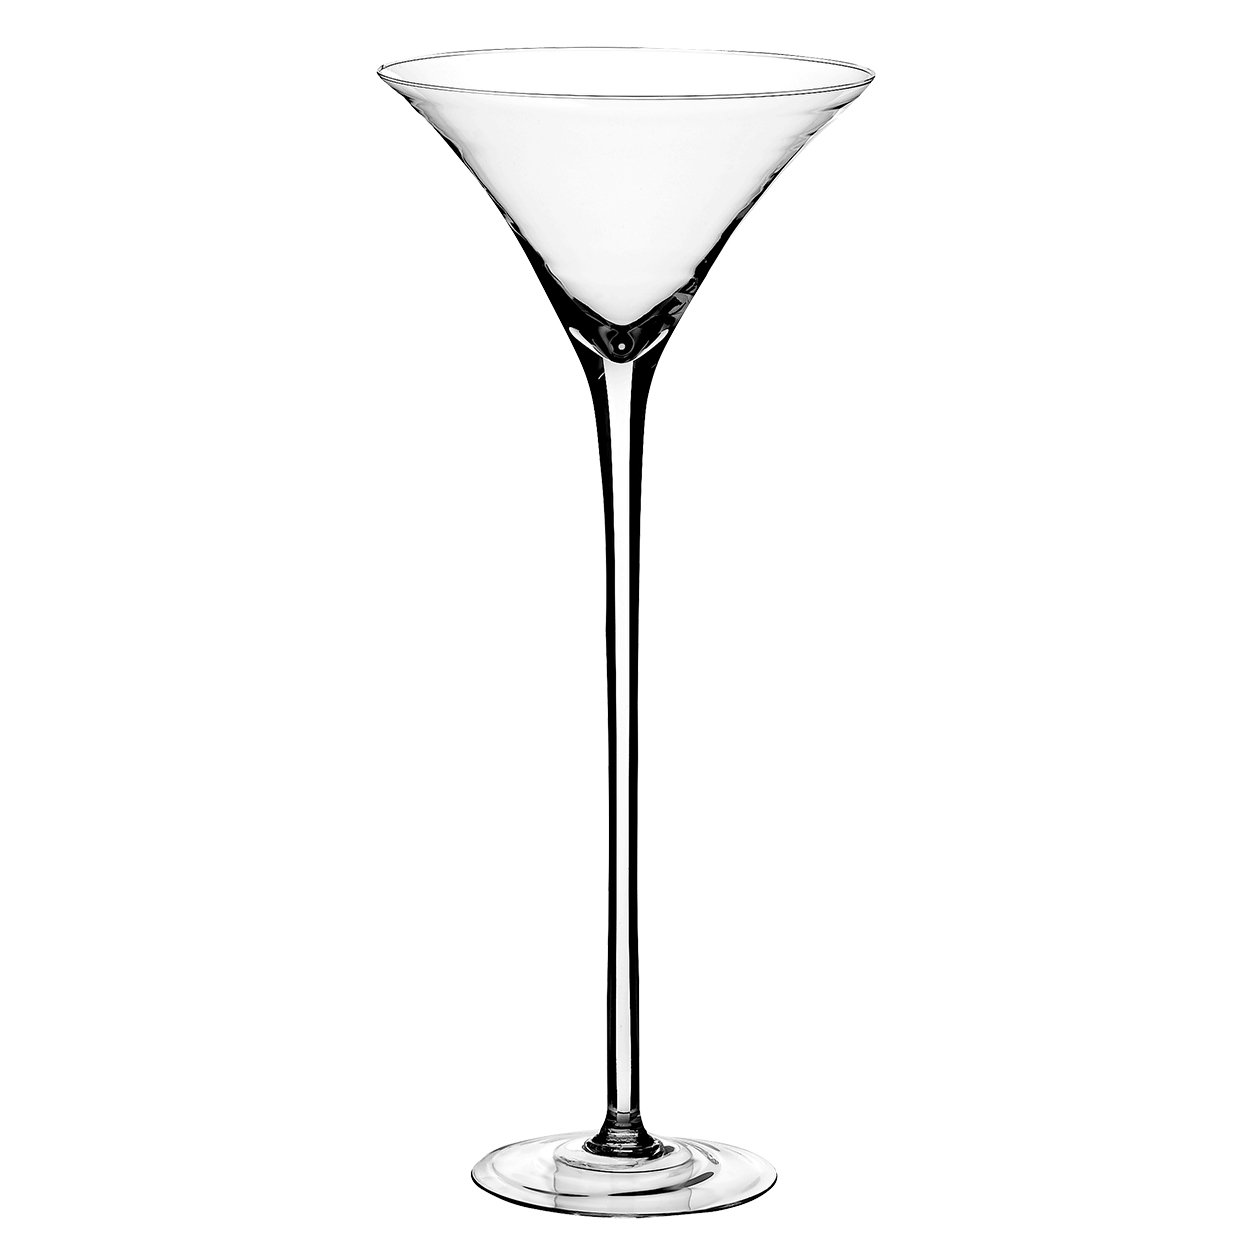 Syndicate Sales 19 1/2 Martini Glass Vase, Clear